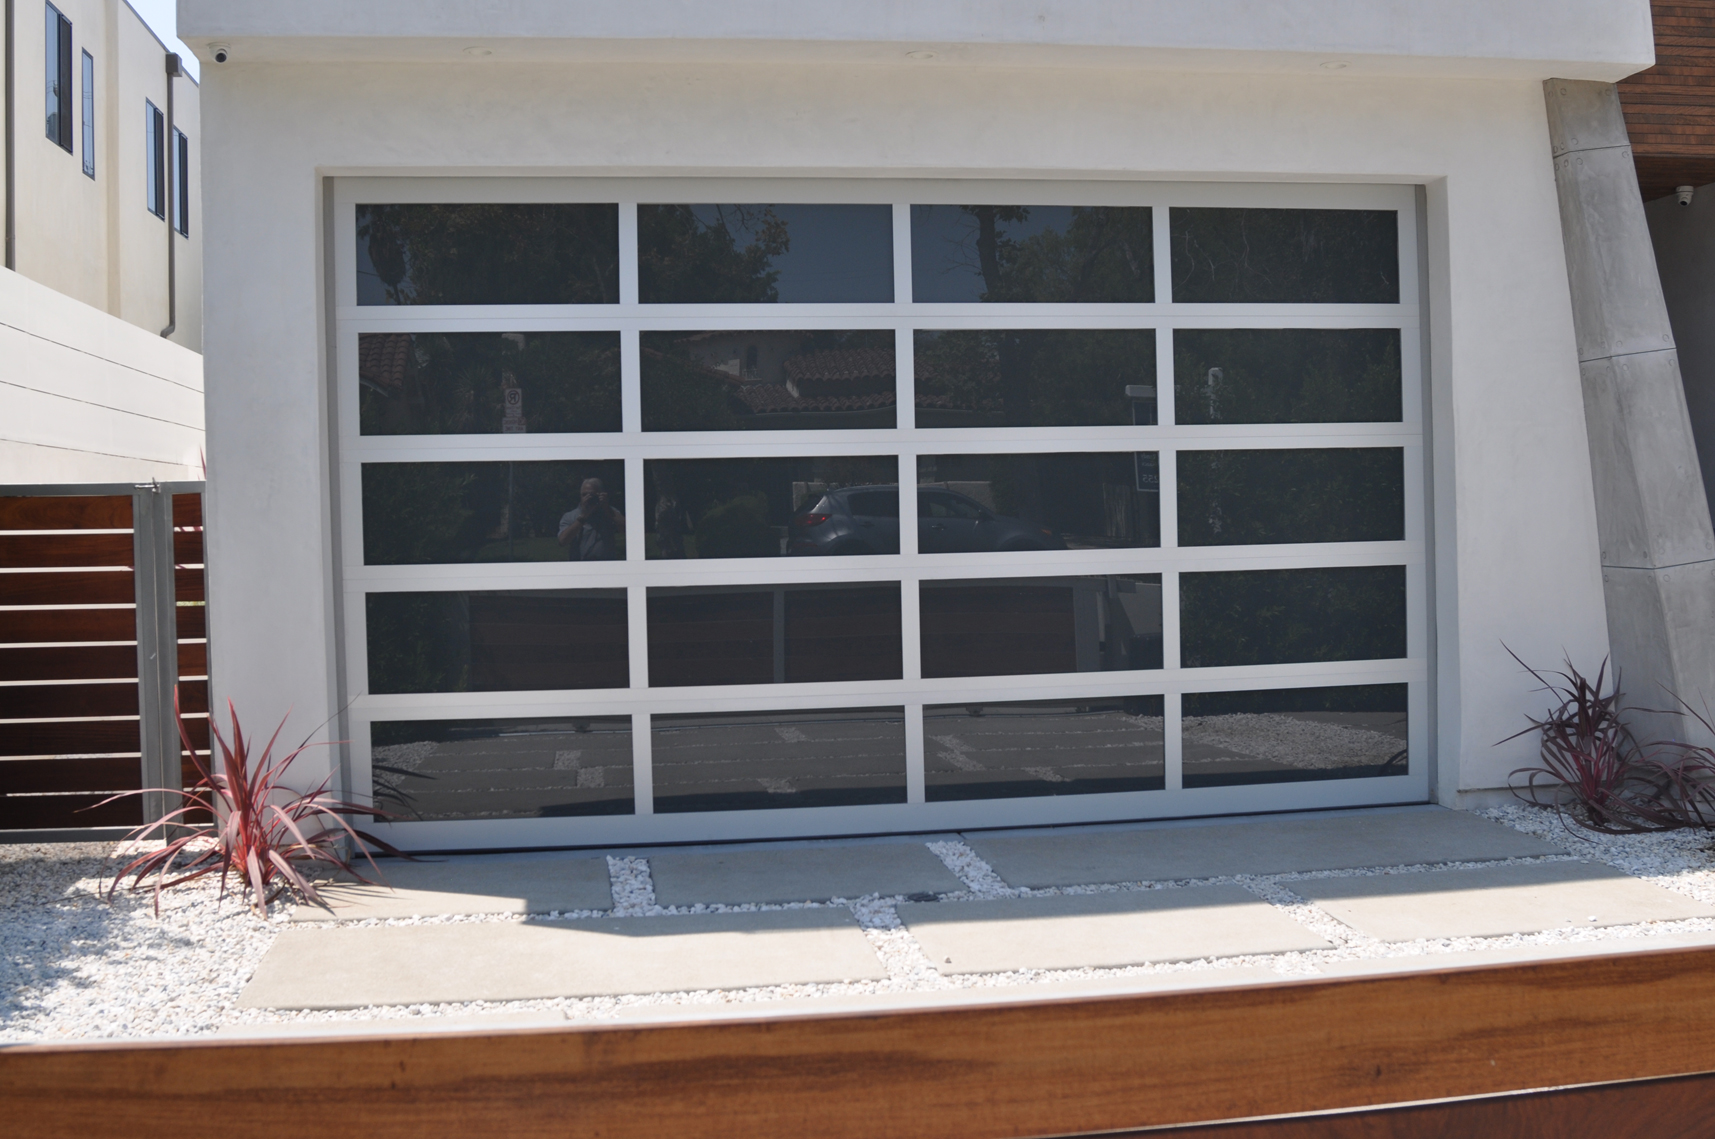 1139 #74452C Full View Aluminum Doors & Gates image Full View Aluminum Garage Doors 37231715